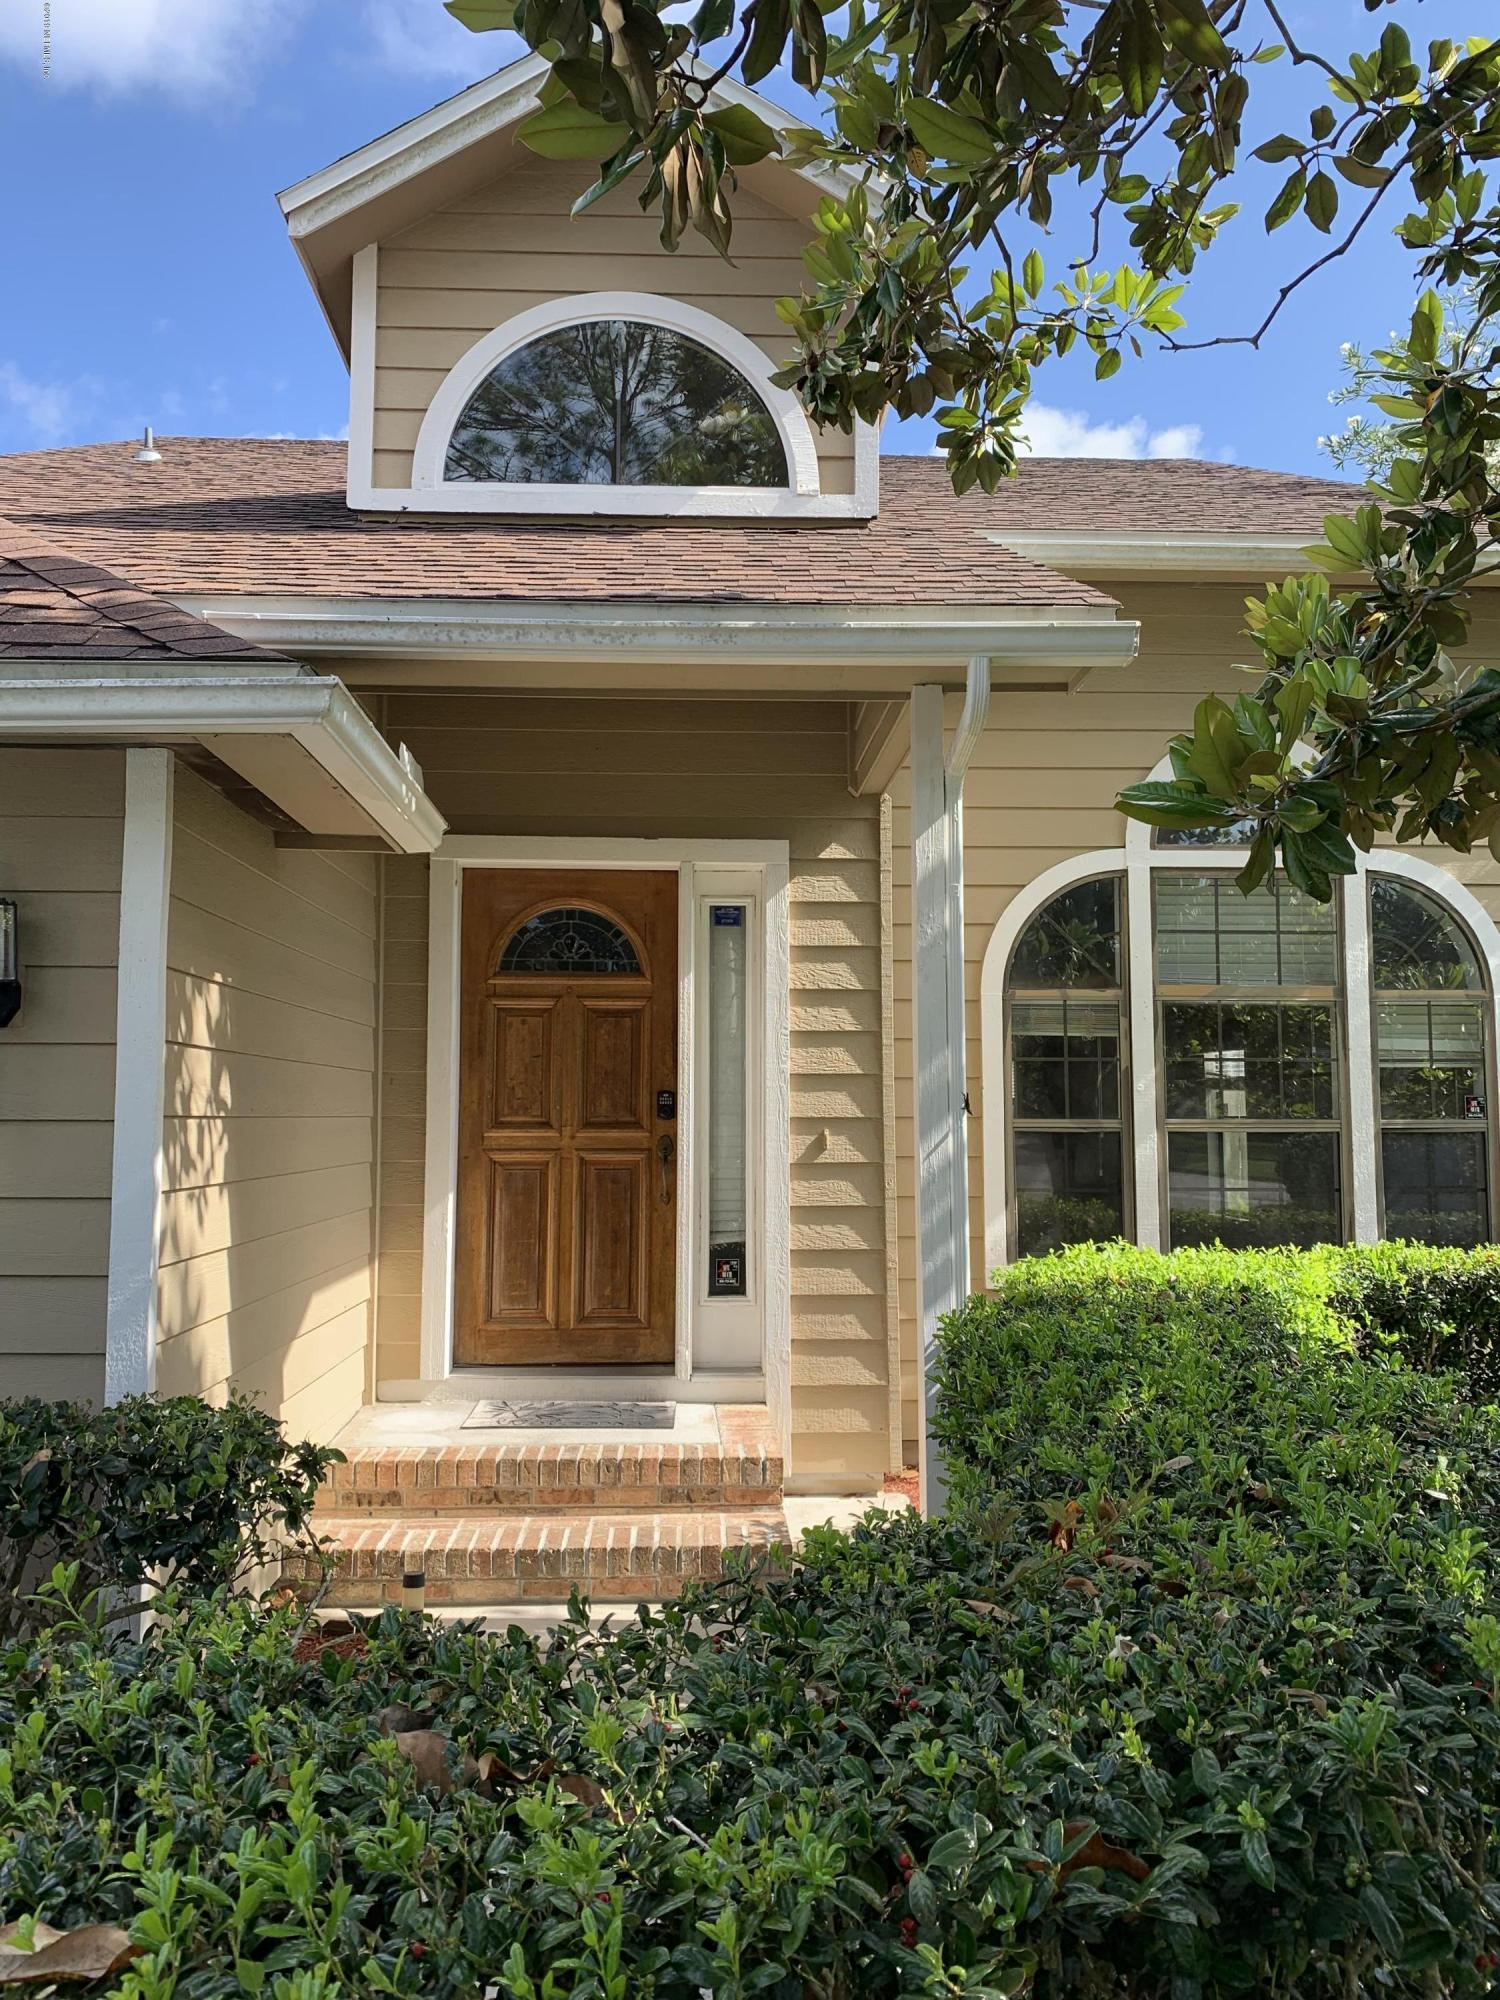 14305 PABLO WOODS, JACKSONVILLE, FLORIDA 32224, 3 Bedrooms Bedrooms, ,2 BathroomsBathrooms,Residential - single family,For sale,PABLO WOODS,994972